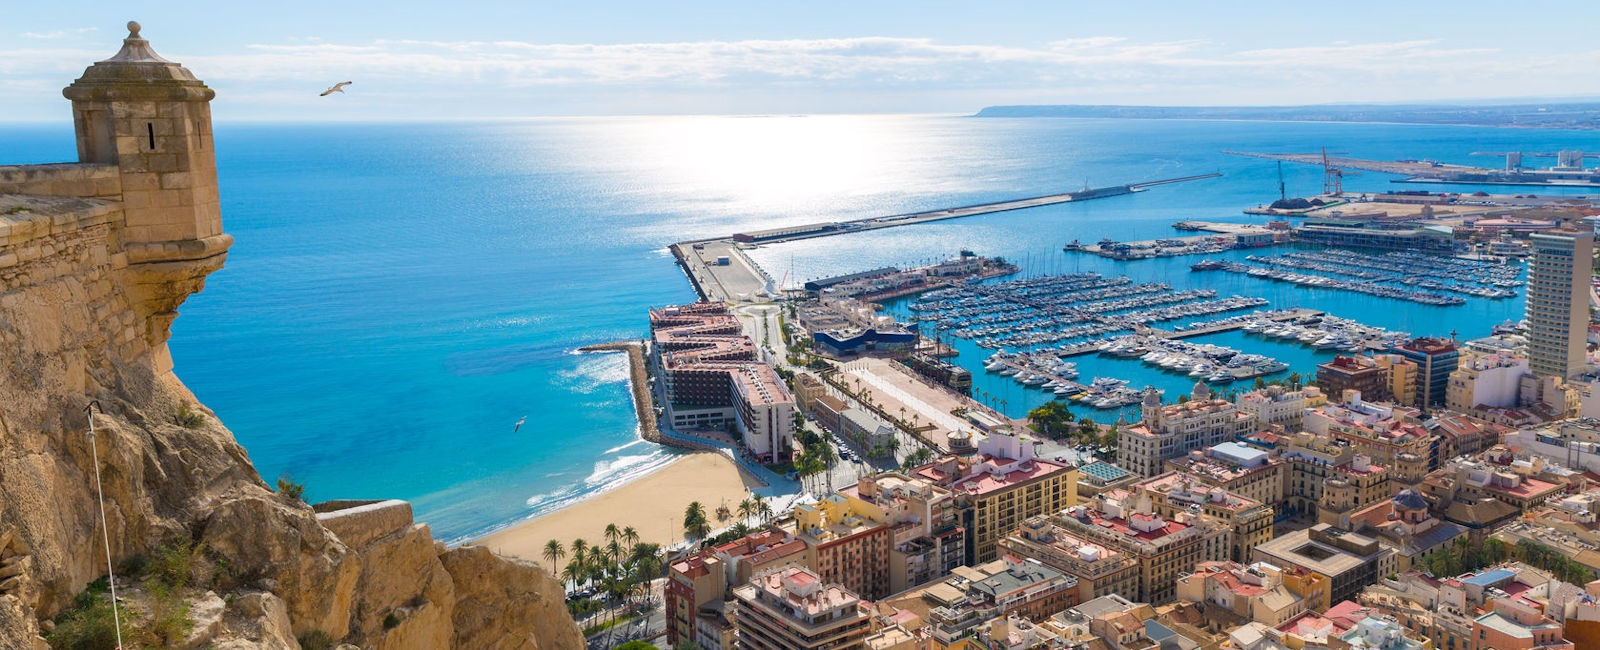 Luxury Alicante Holidays